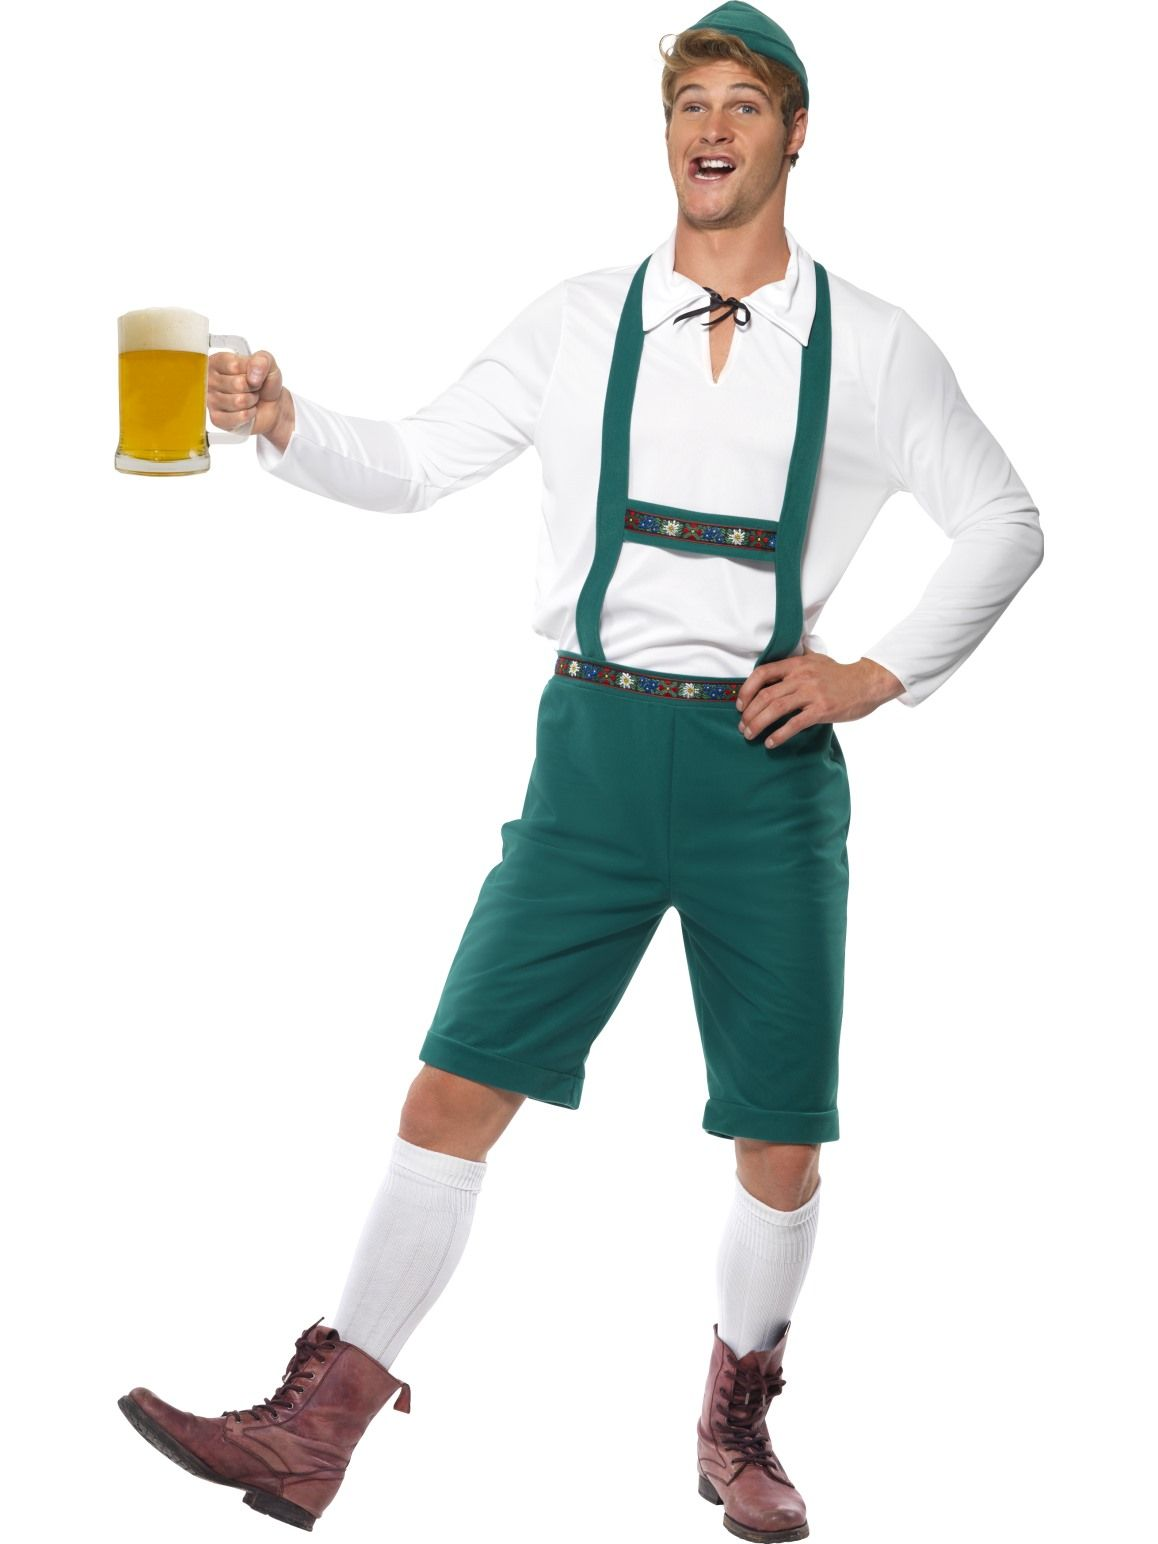 Oktoberfest Green Lederhosen Costume - Buy Online Only